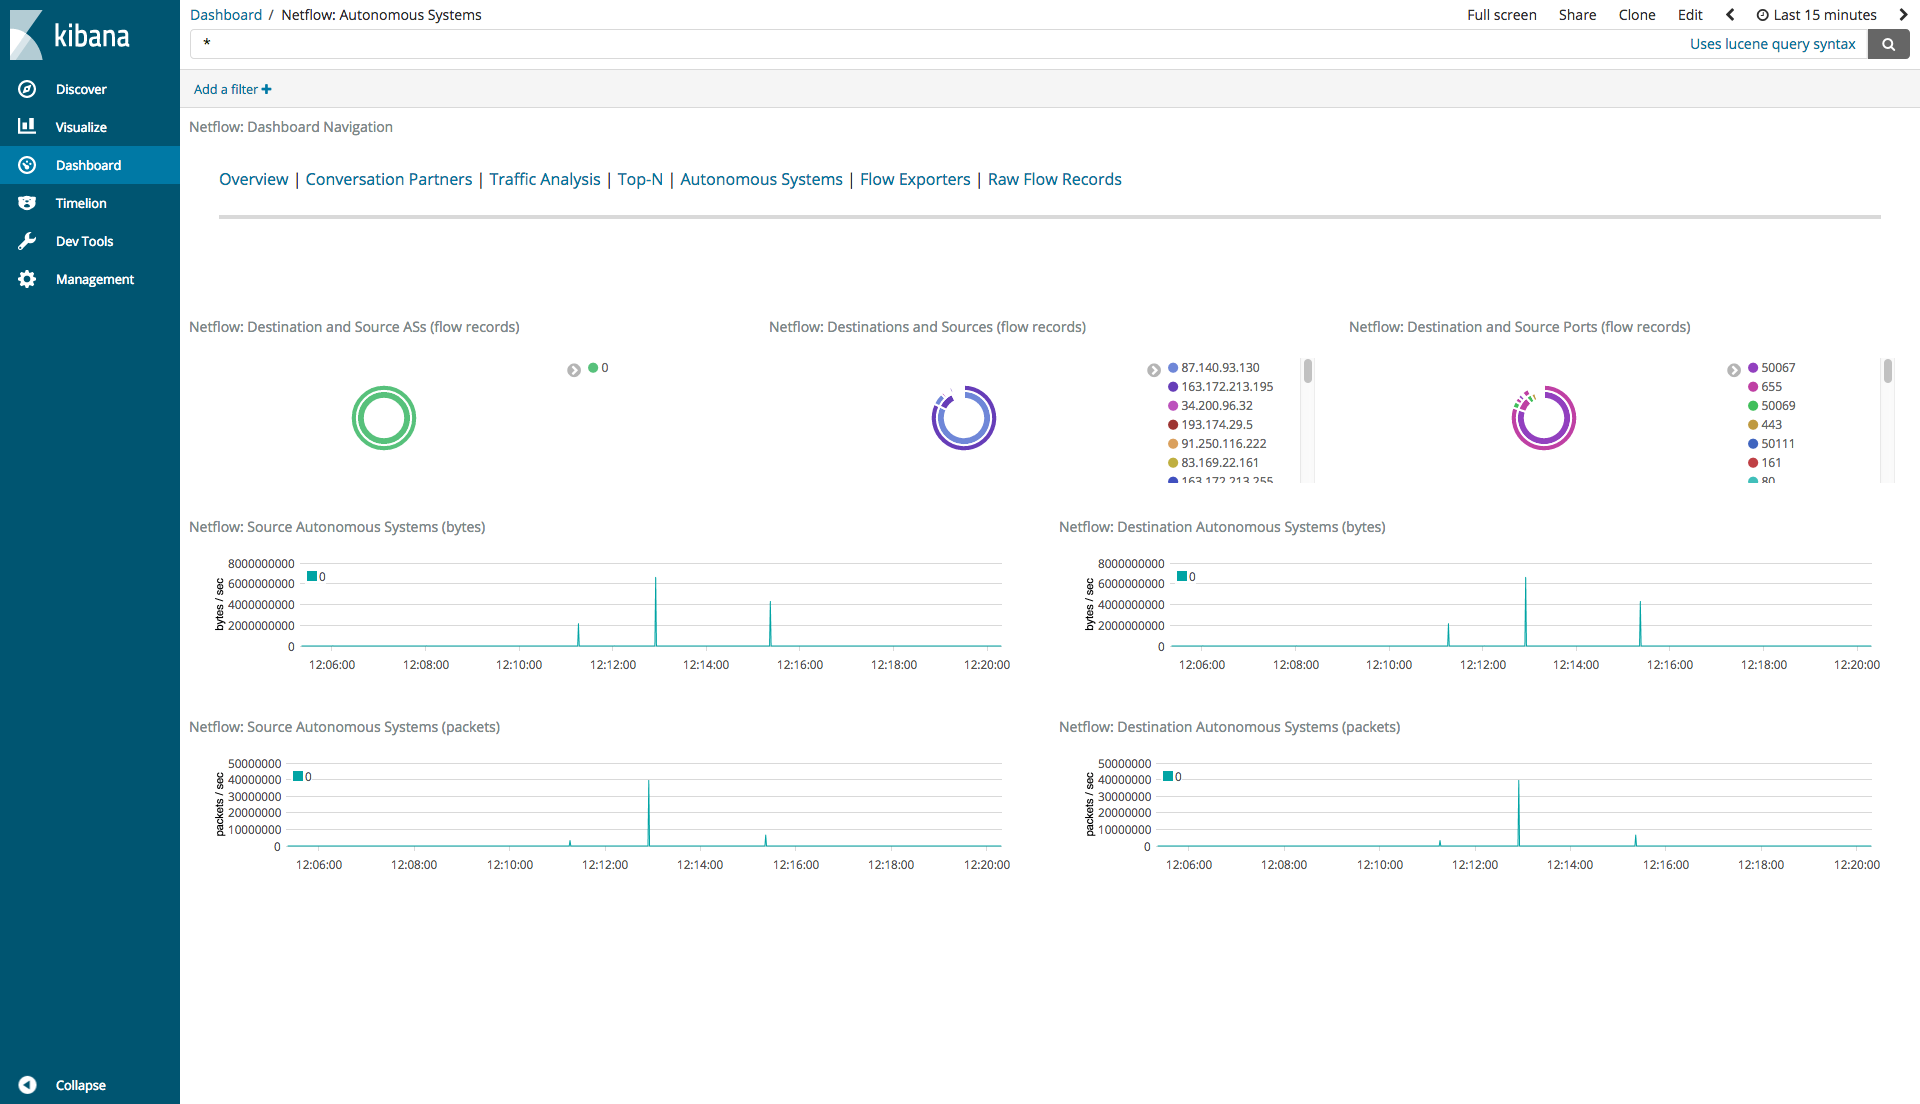 HZN-1229] Design Kibana dashboards for flow - The OpenNMS